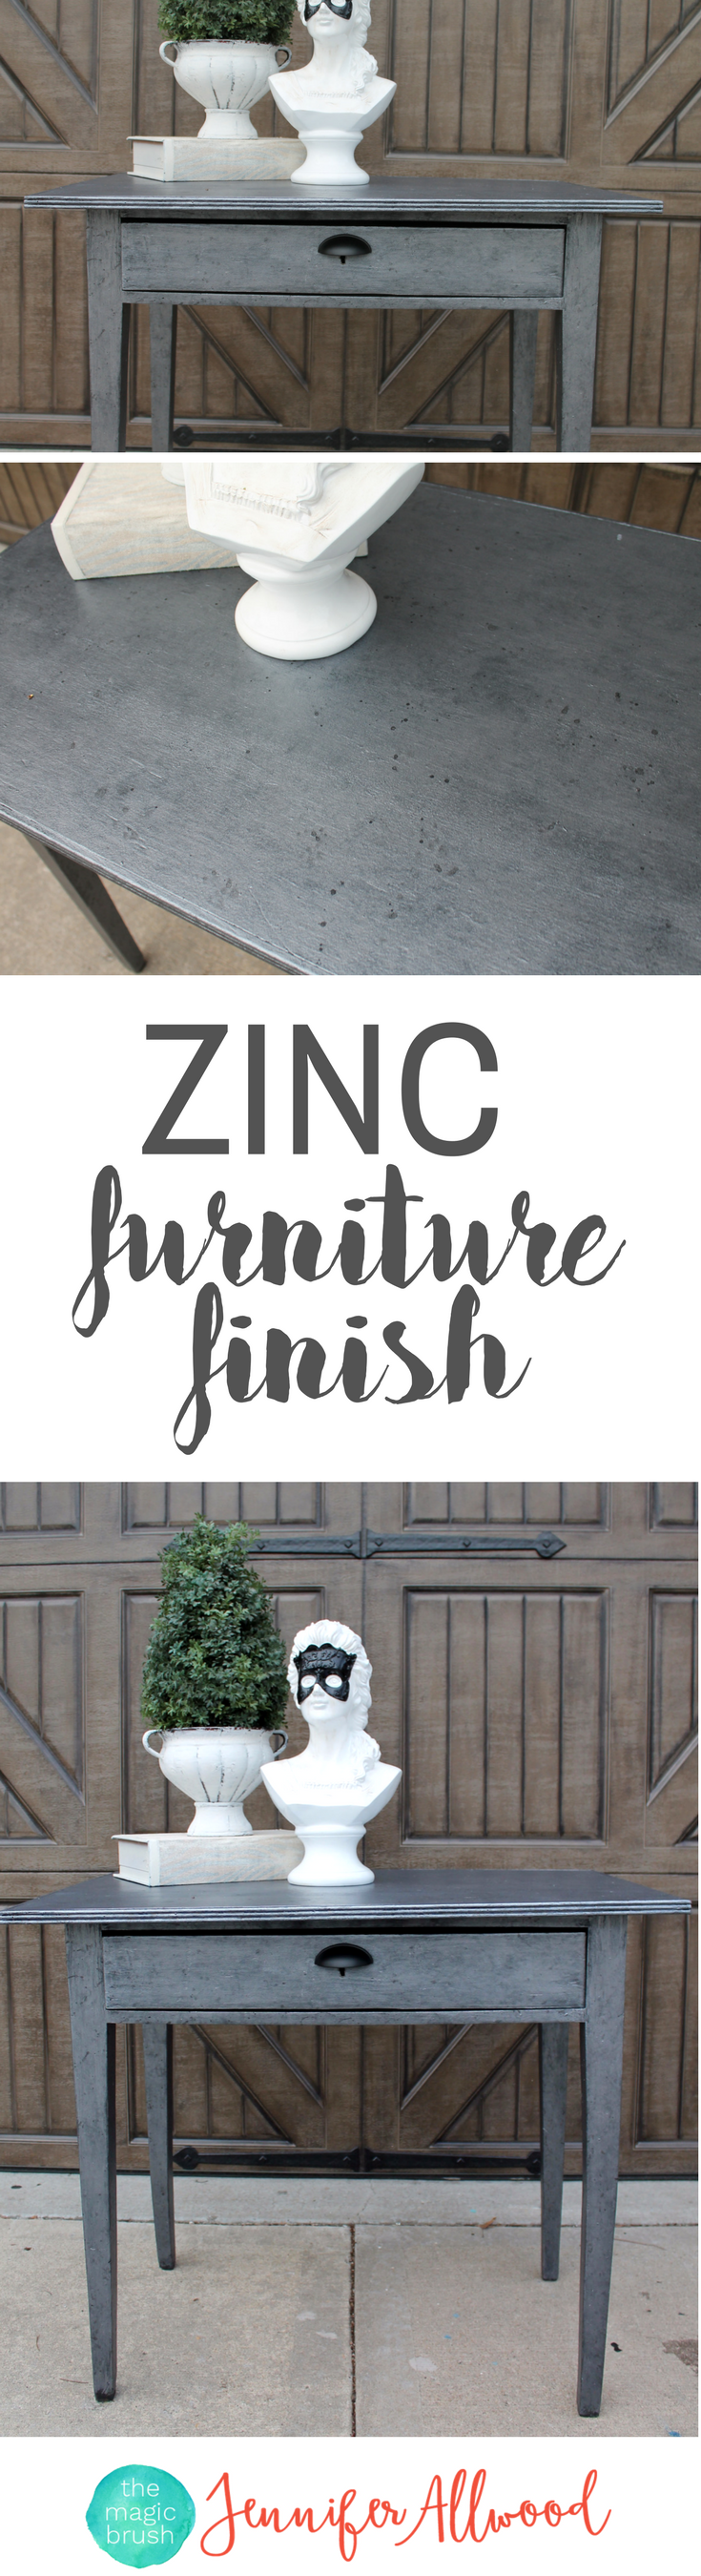 How To Paint A Zinc Furniture Finish | Silver Painted Furniture Ideas | DIY Furniture  Finish